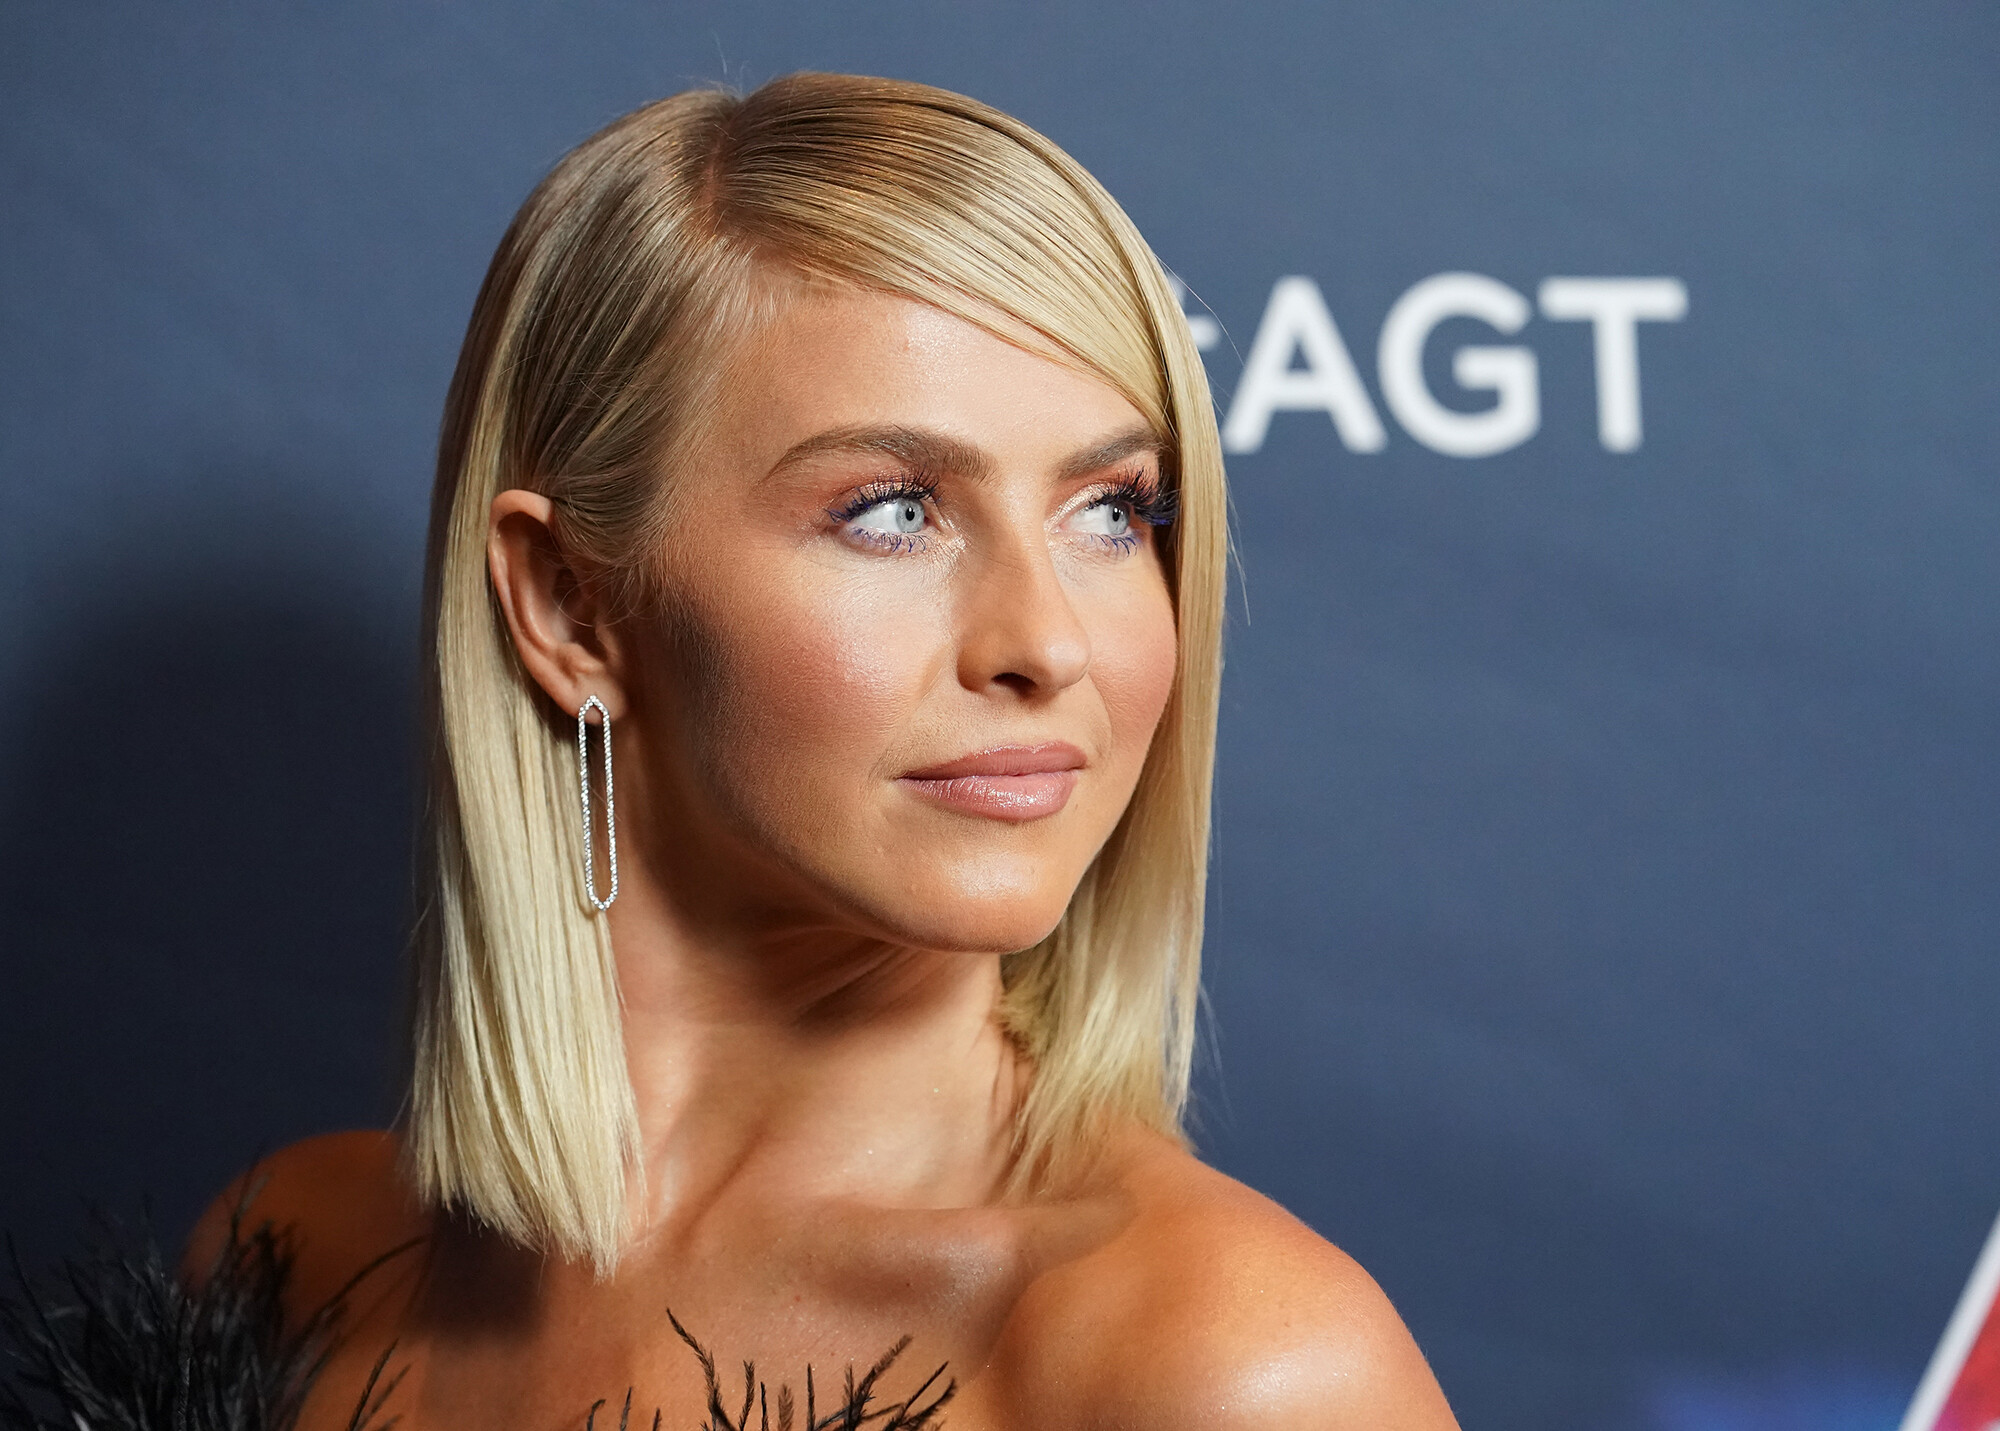 <i>Rachel Luna/Getty Images</i><br/>Julianne Hough is a judge in the forthcoming CBS series